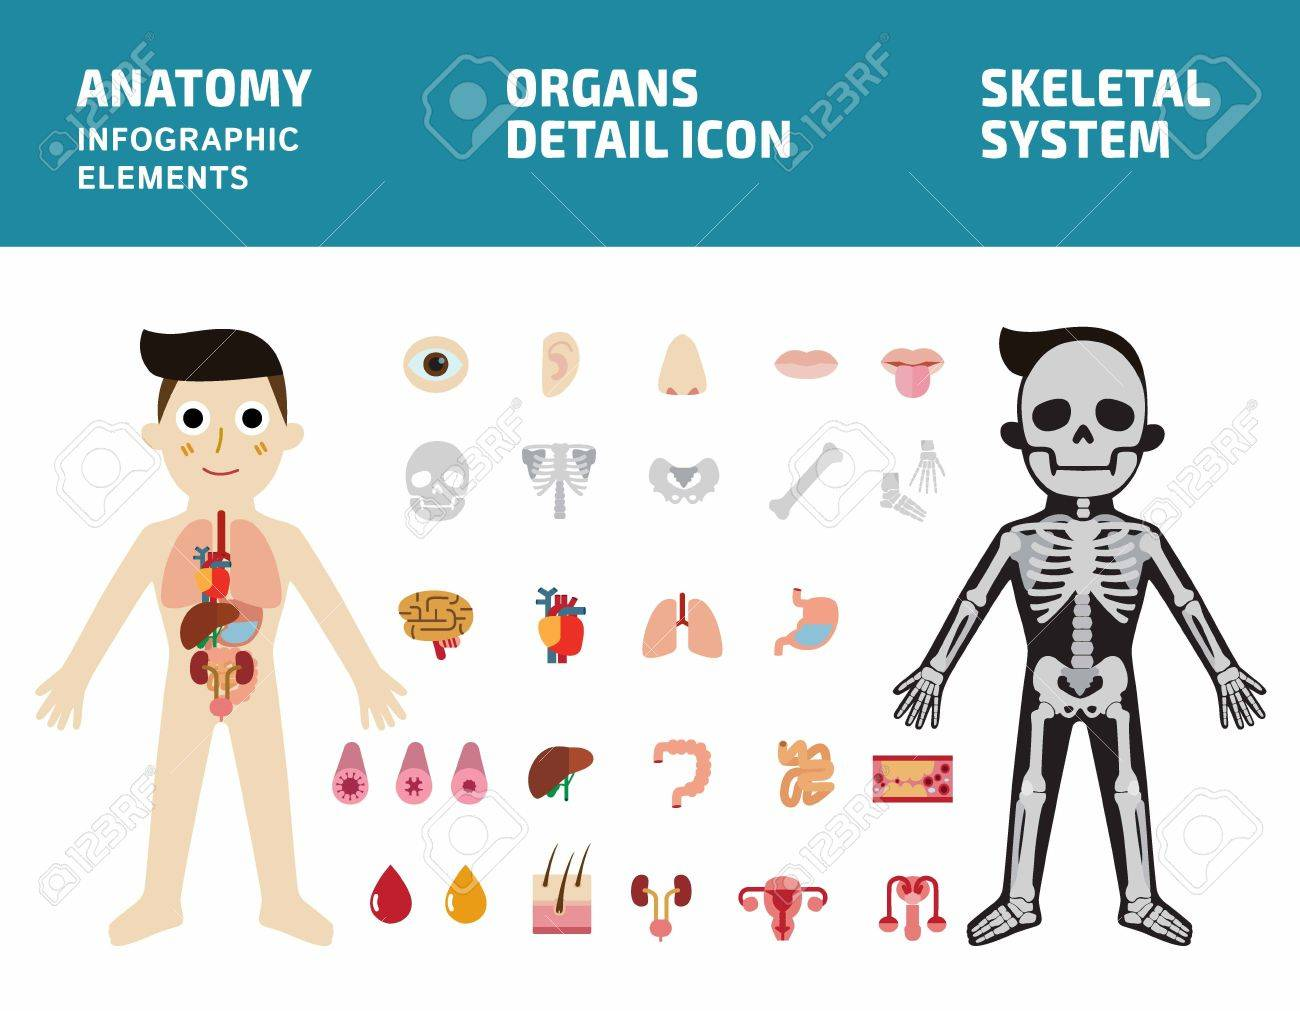 The system of internal organs. Human anatomy body infographic. skeletal system.Internal organs detailed icons set.Flat vector illustration graphic for banners brochure poster.Medical health concept. - 57362987